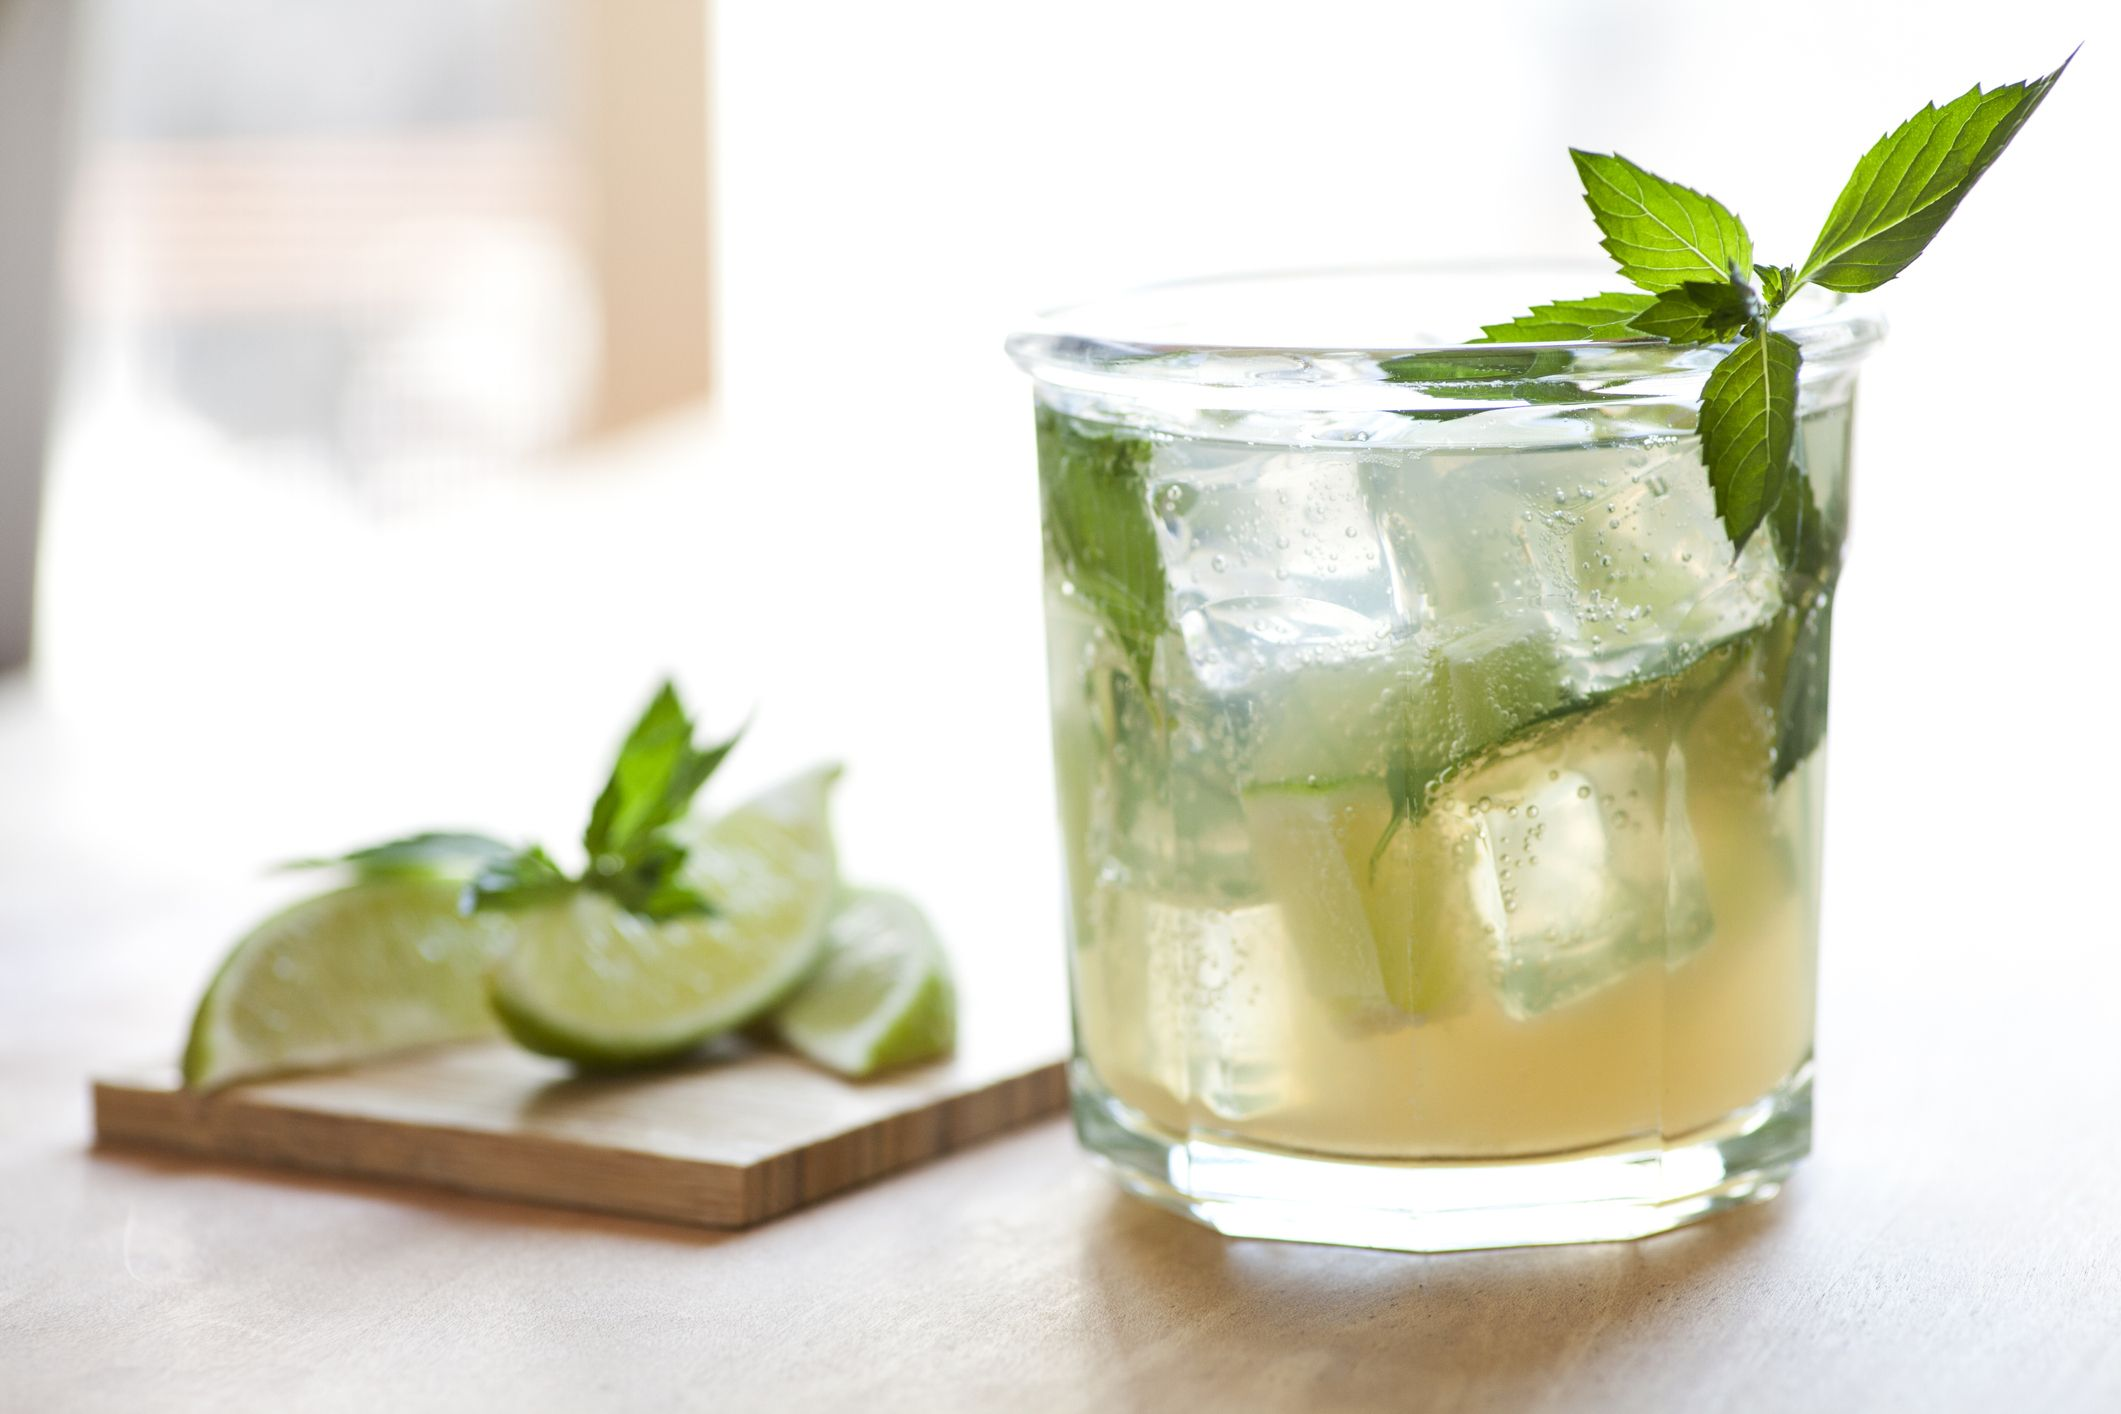 Best summer cocktail recipes for sunny days in the garden